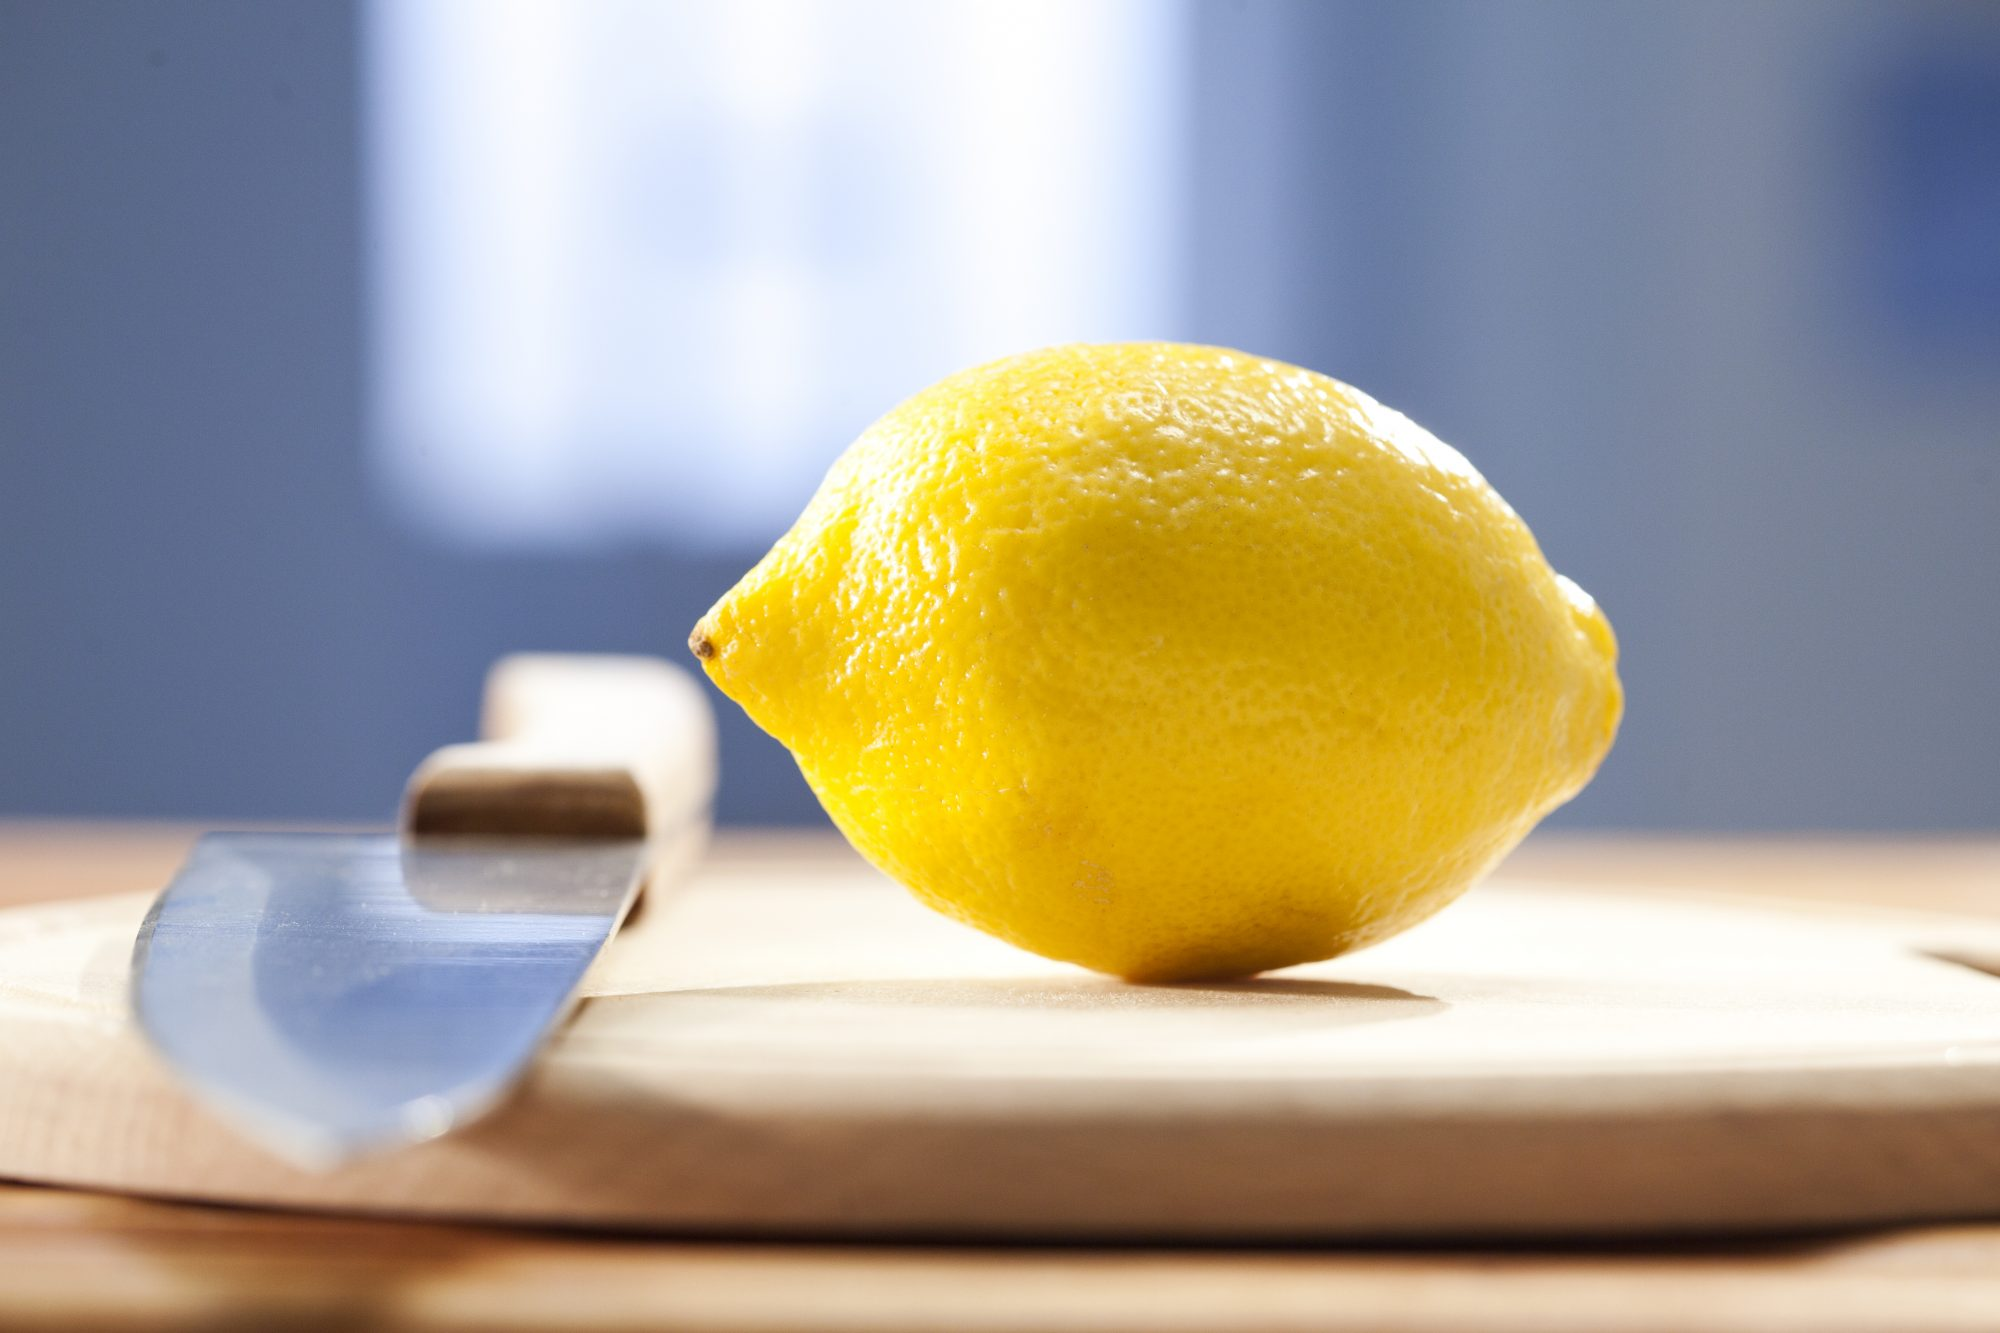 Lemon on Cutting Board